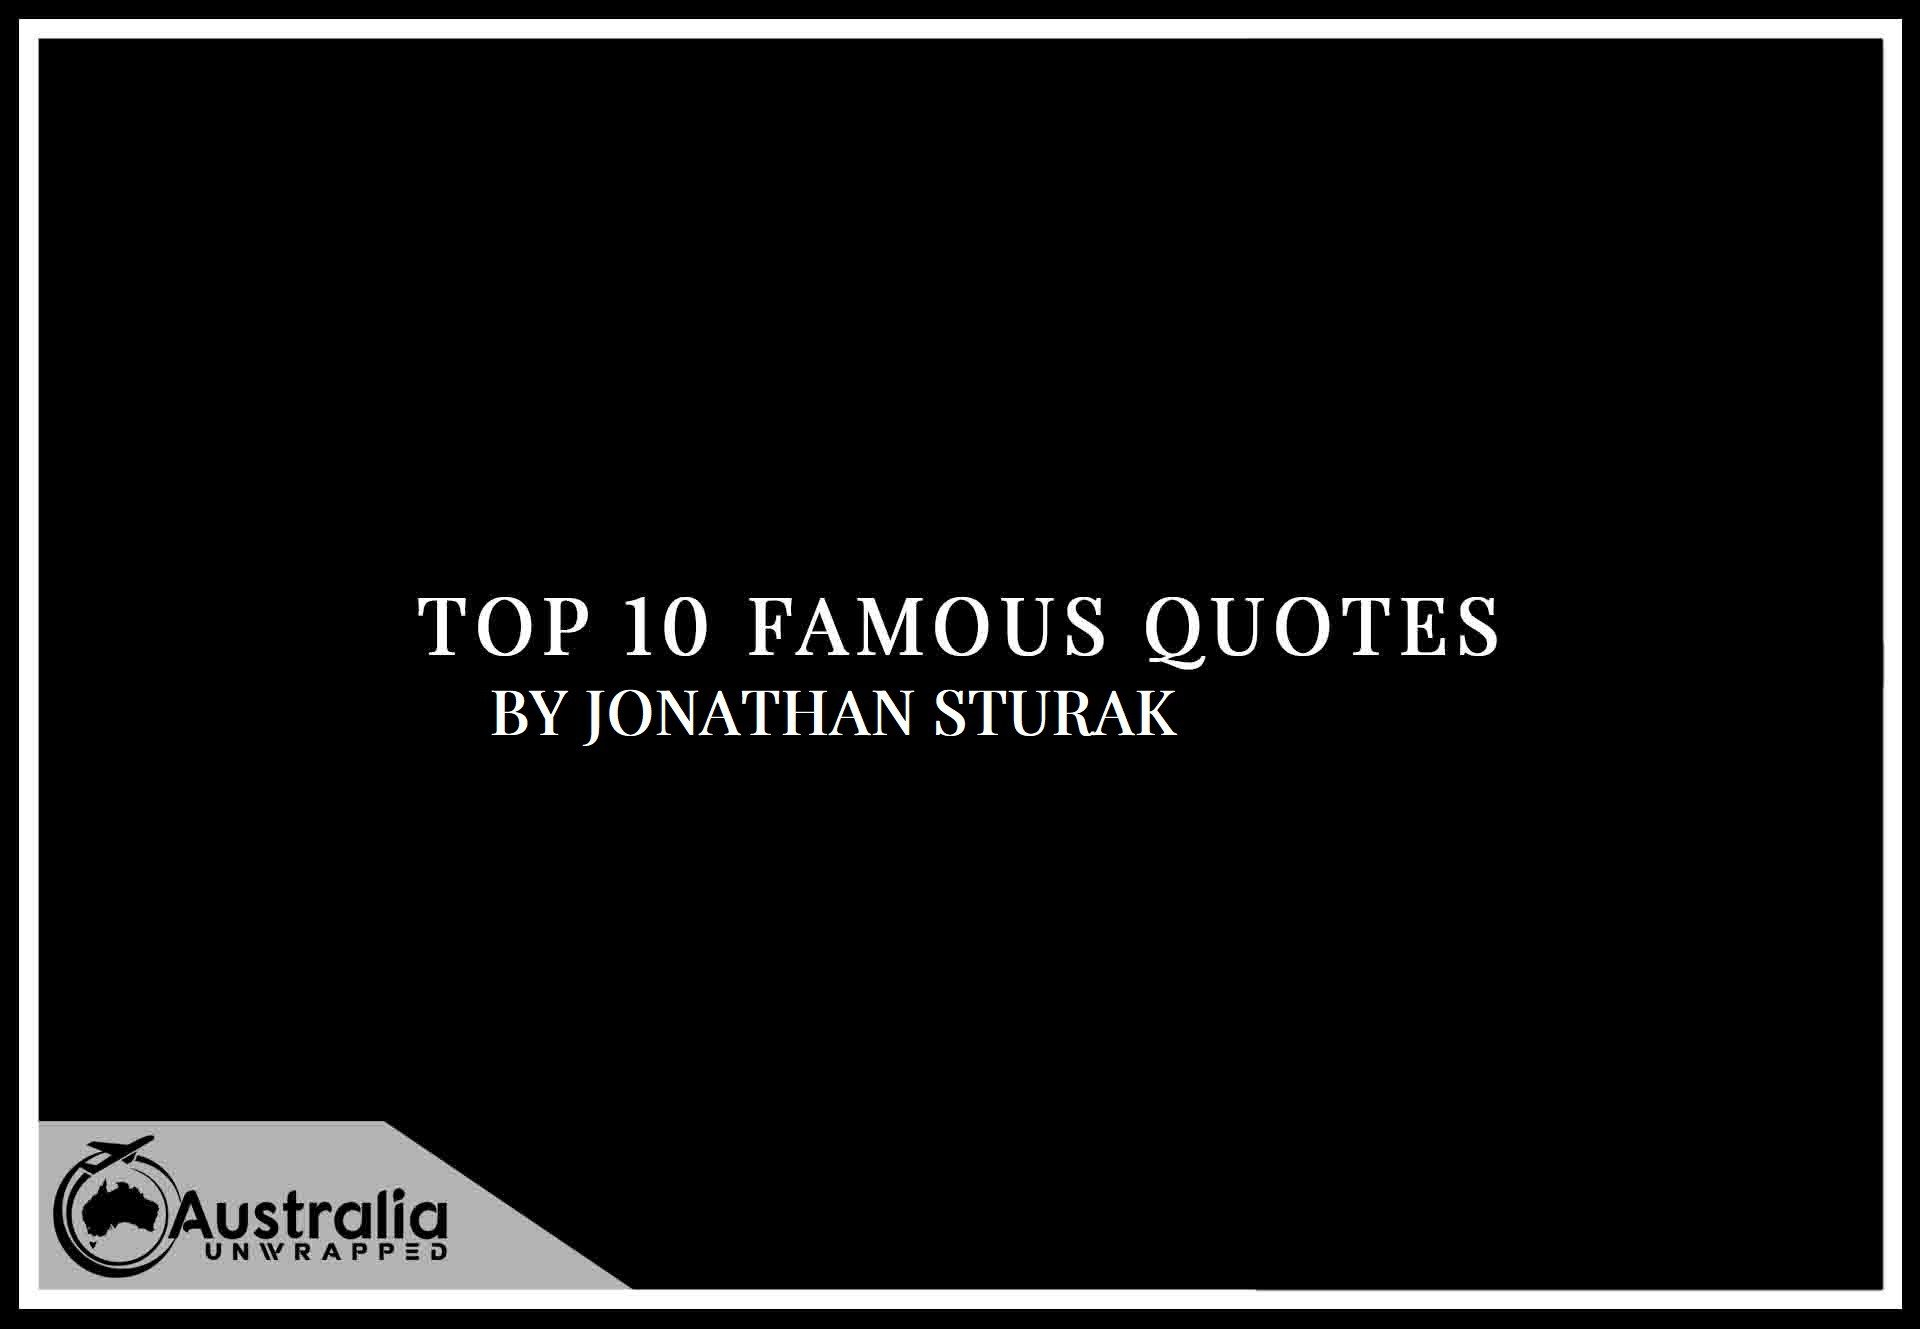 Top 10 Famous Quotes by Author Jonathan Sturak